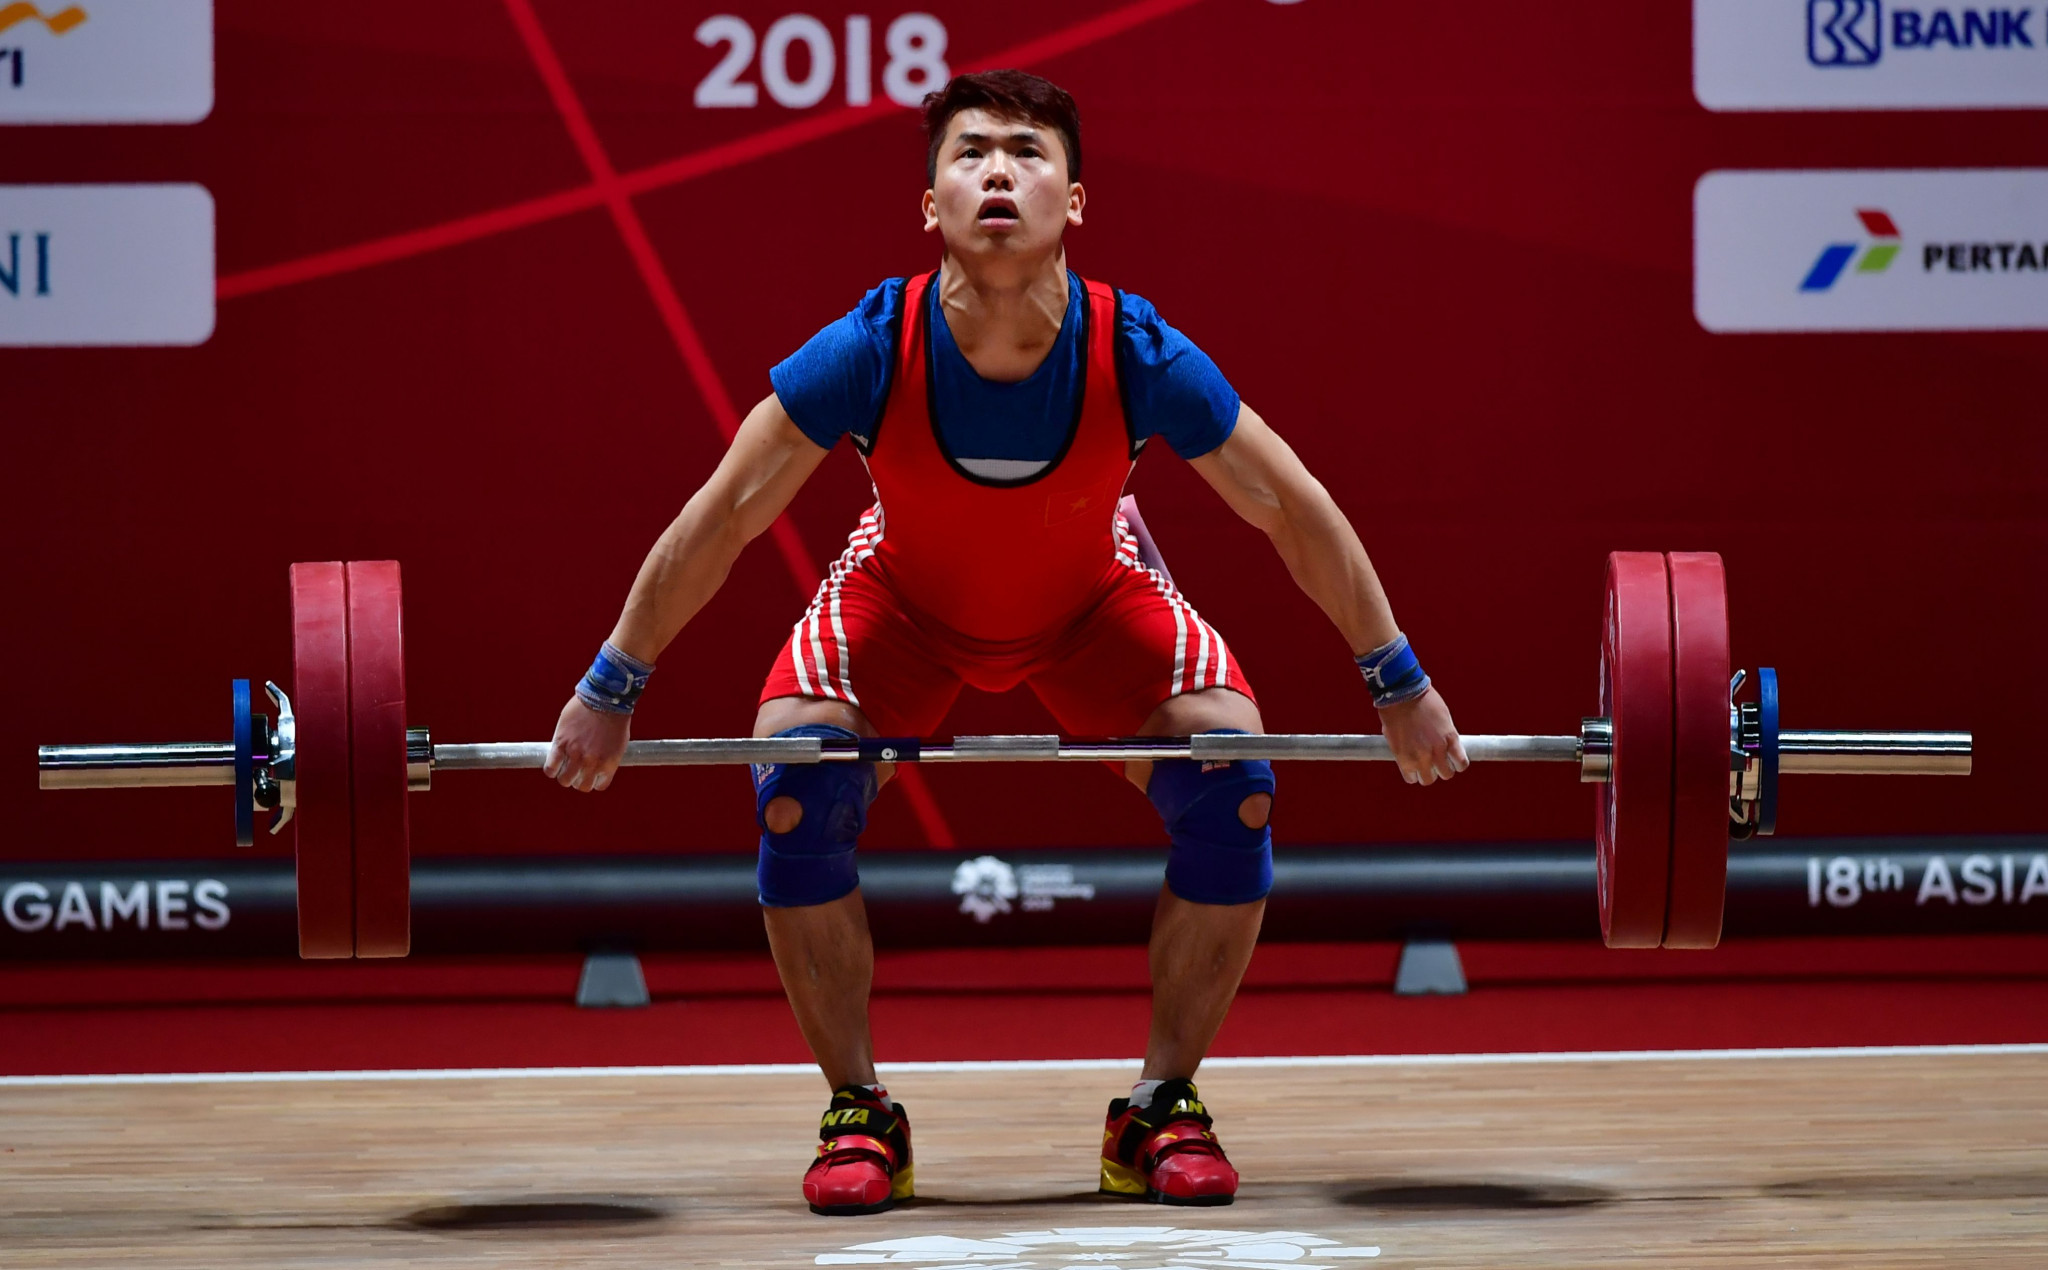 Vietnam's Olympic weightlifting medal contenders face ban as ITA calls in sanctions panel